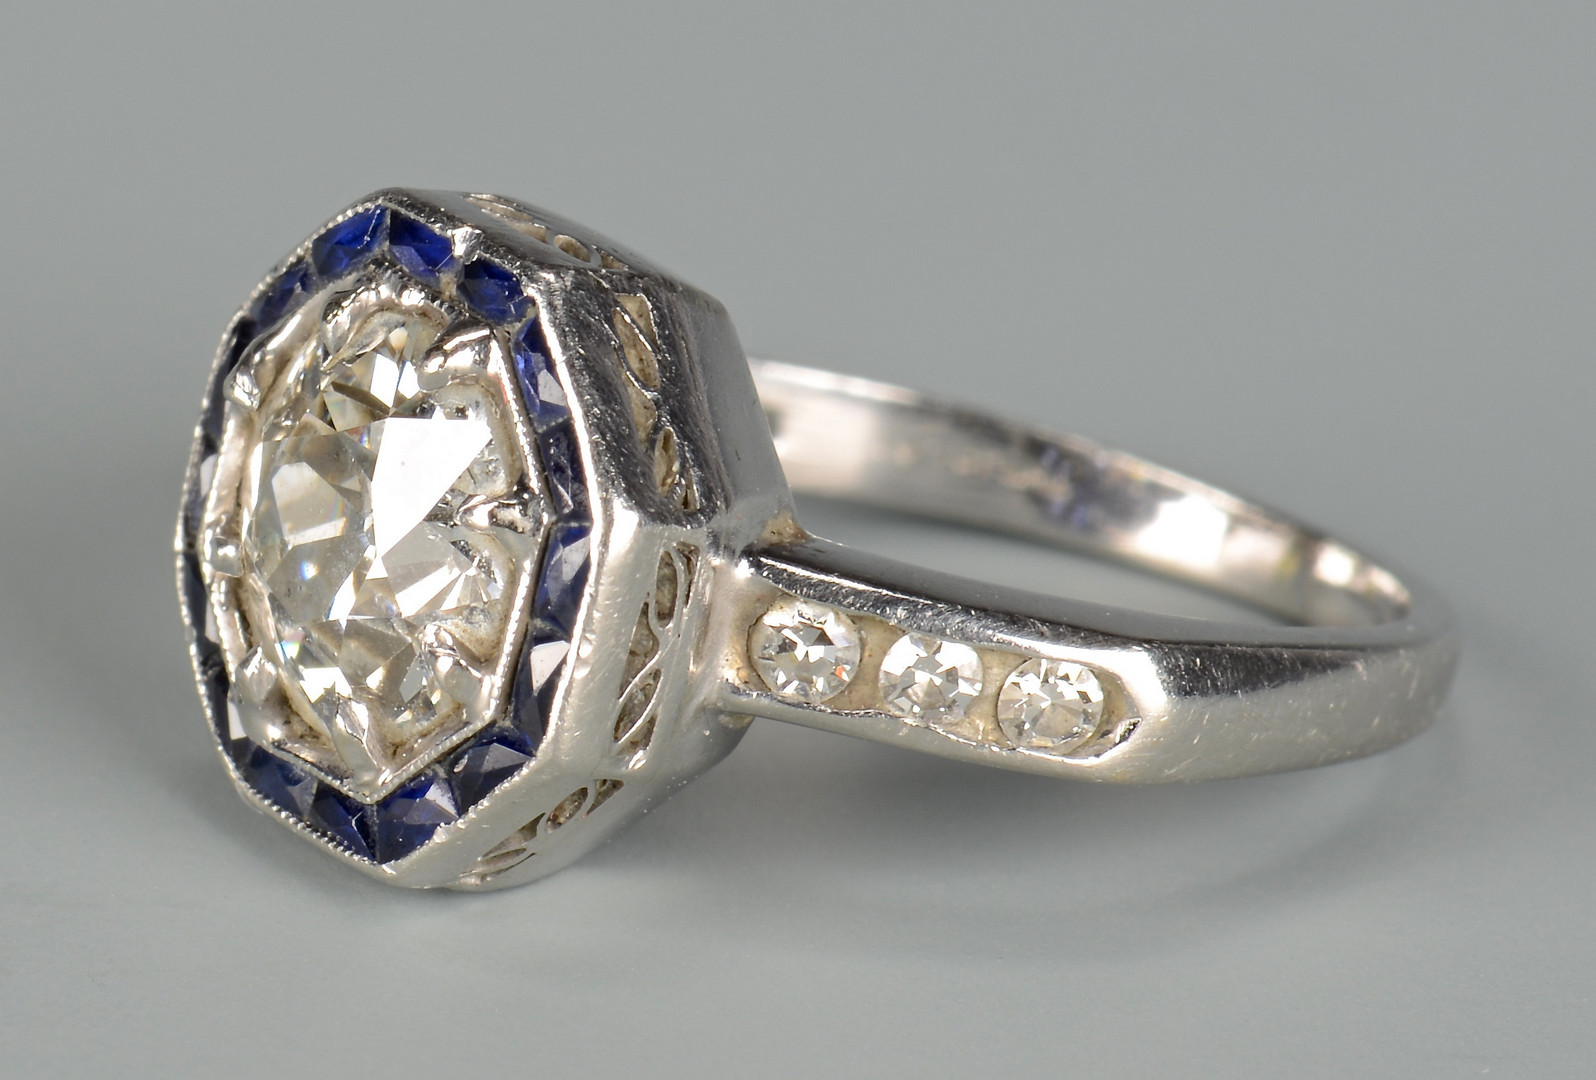 Lot 44: Art Deco 1.65 ct Diamond Ring